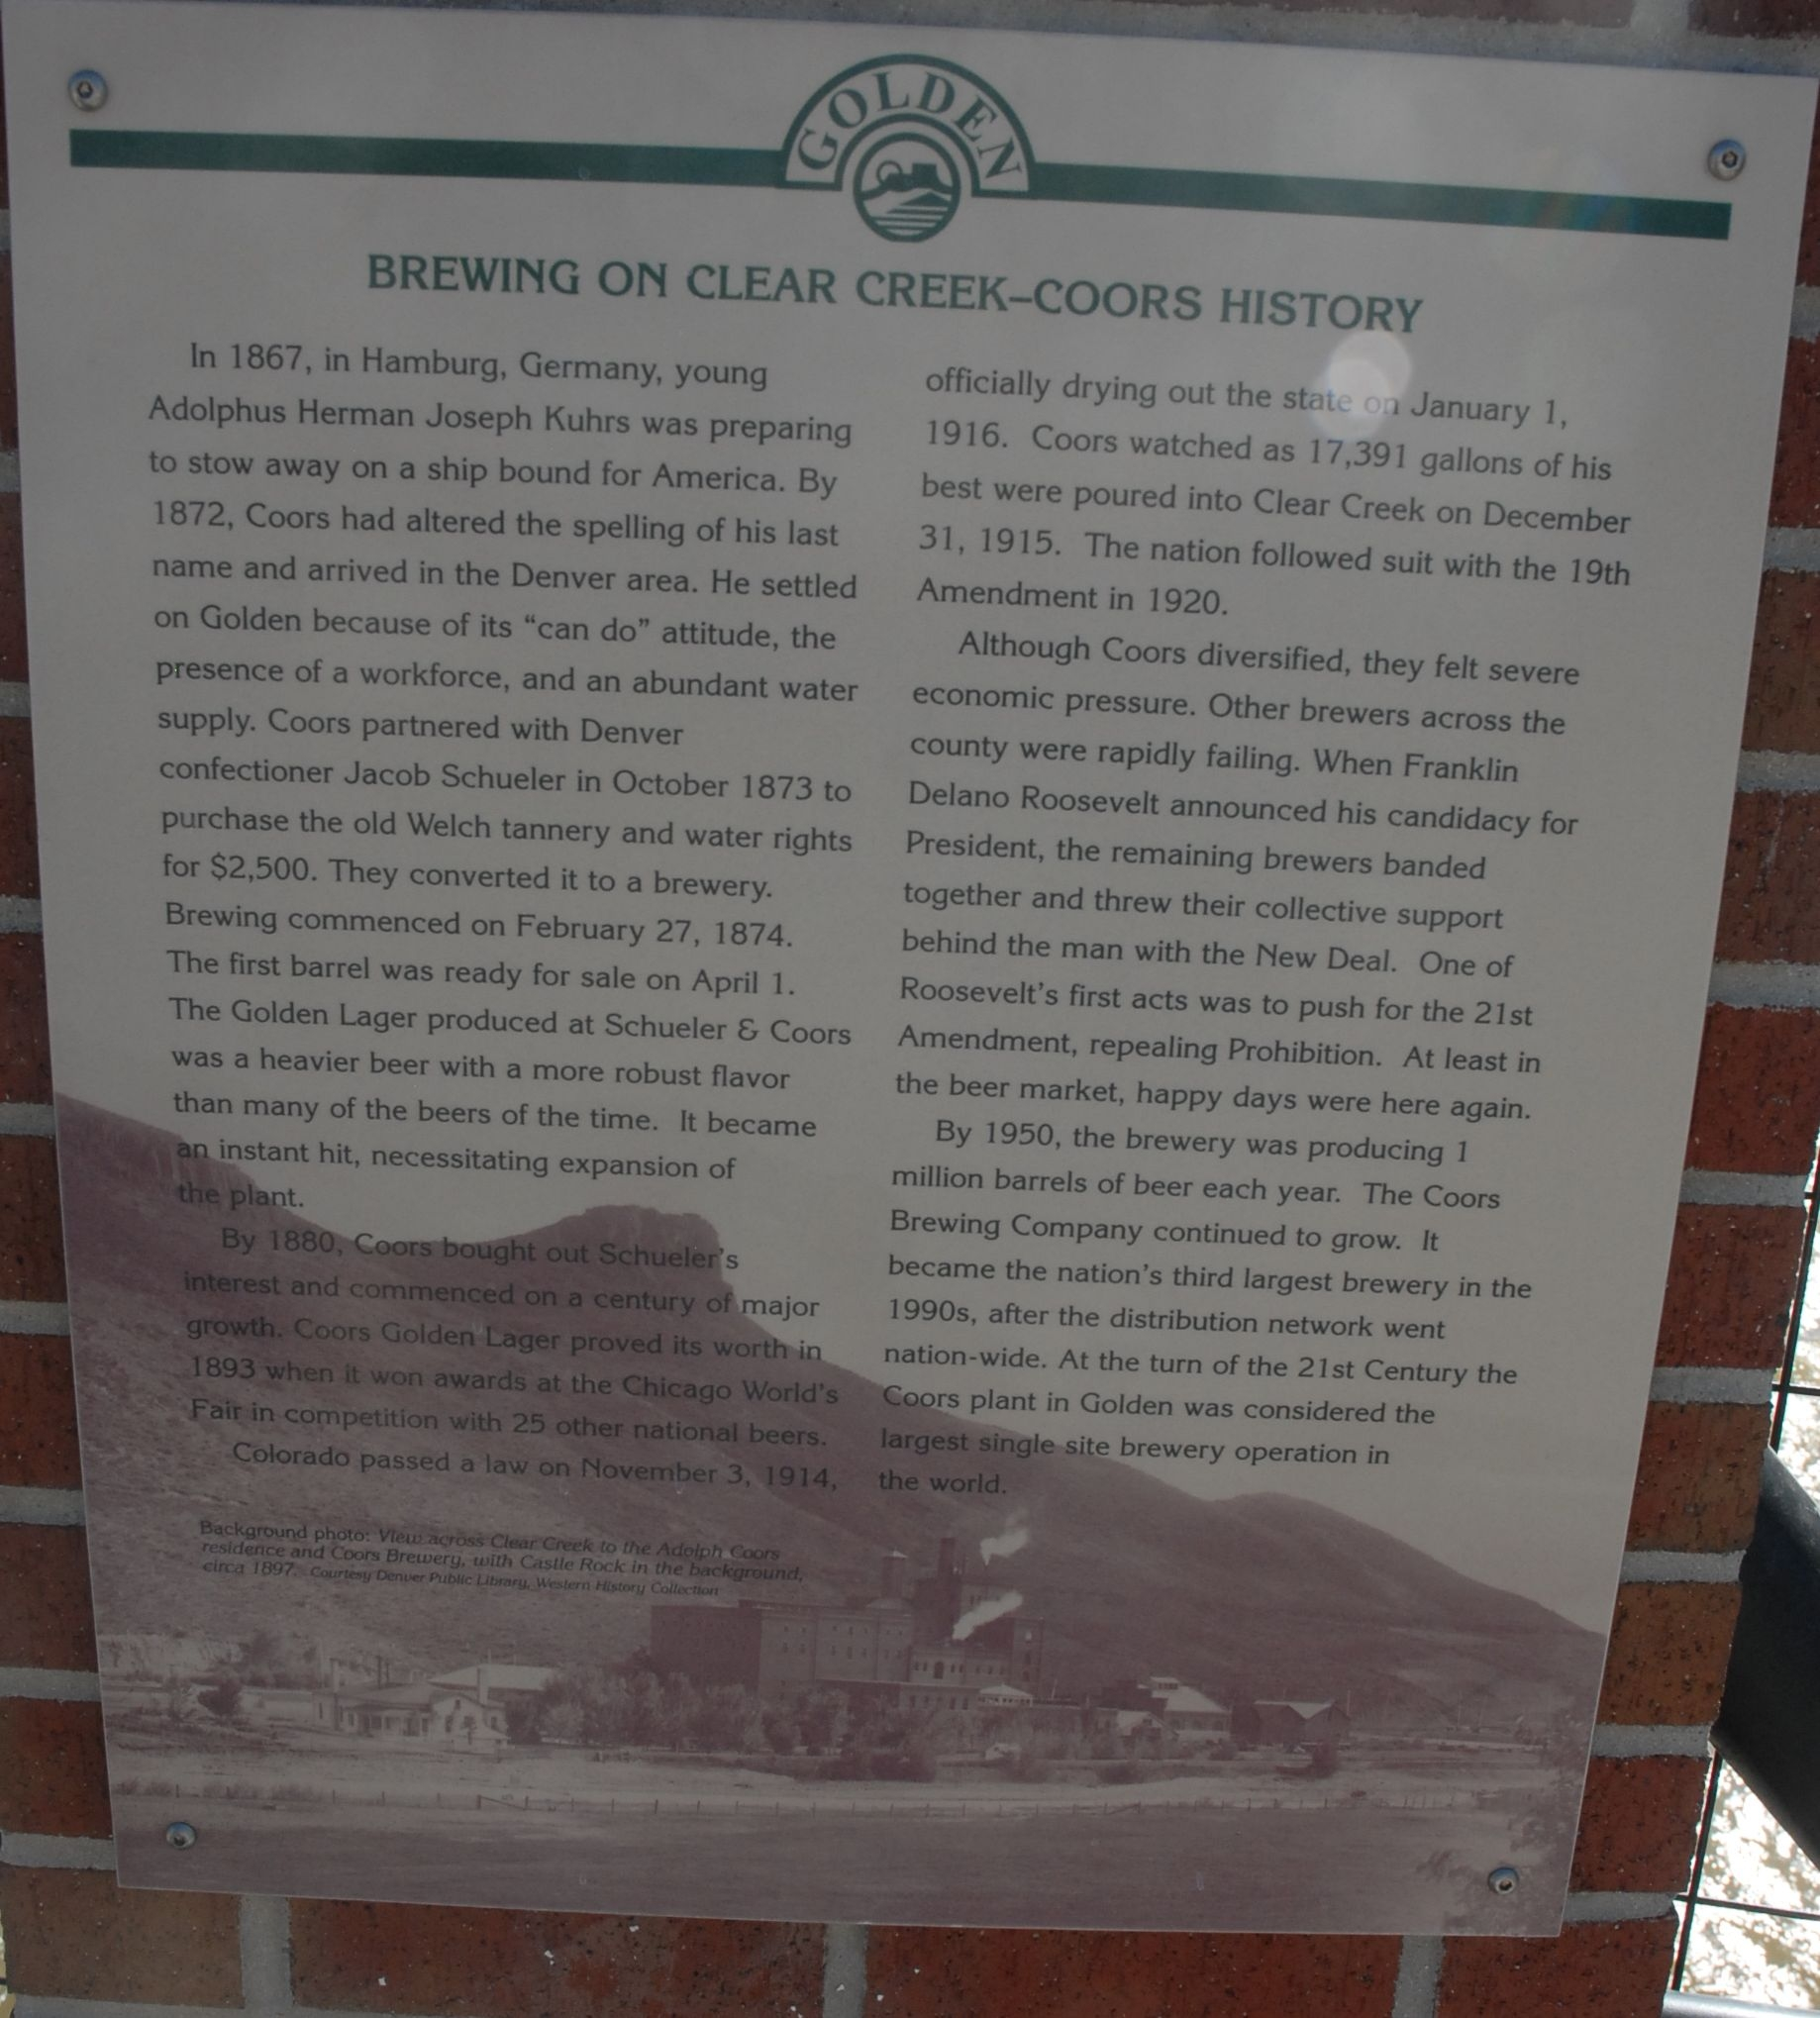 Brewing on Clear Creek-Coors History Marker